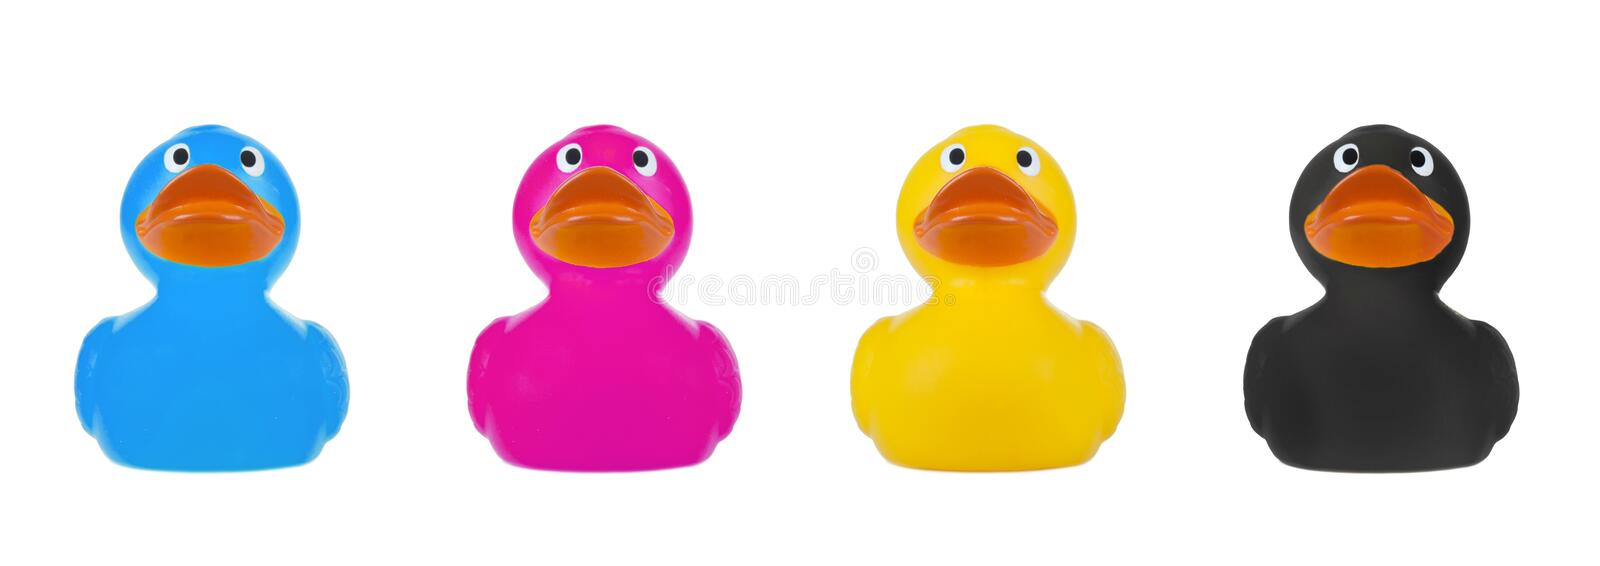 Rubber Duck CMYK concept royalty free stock photography